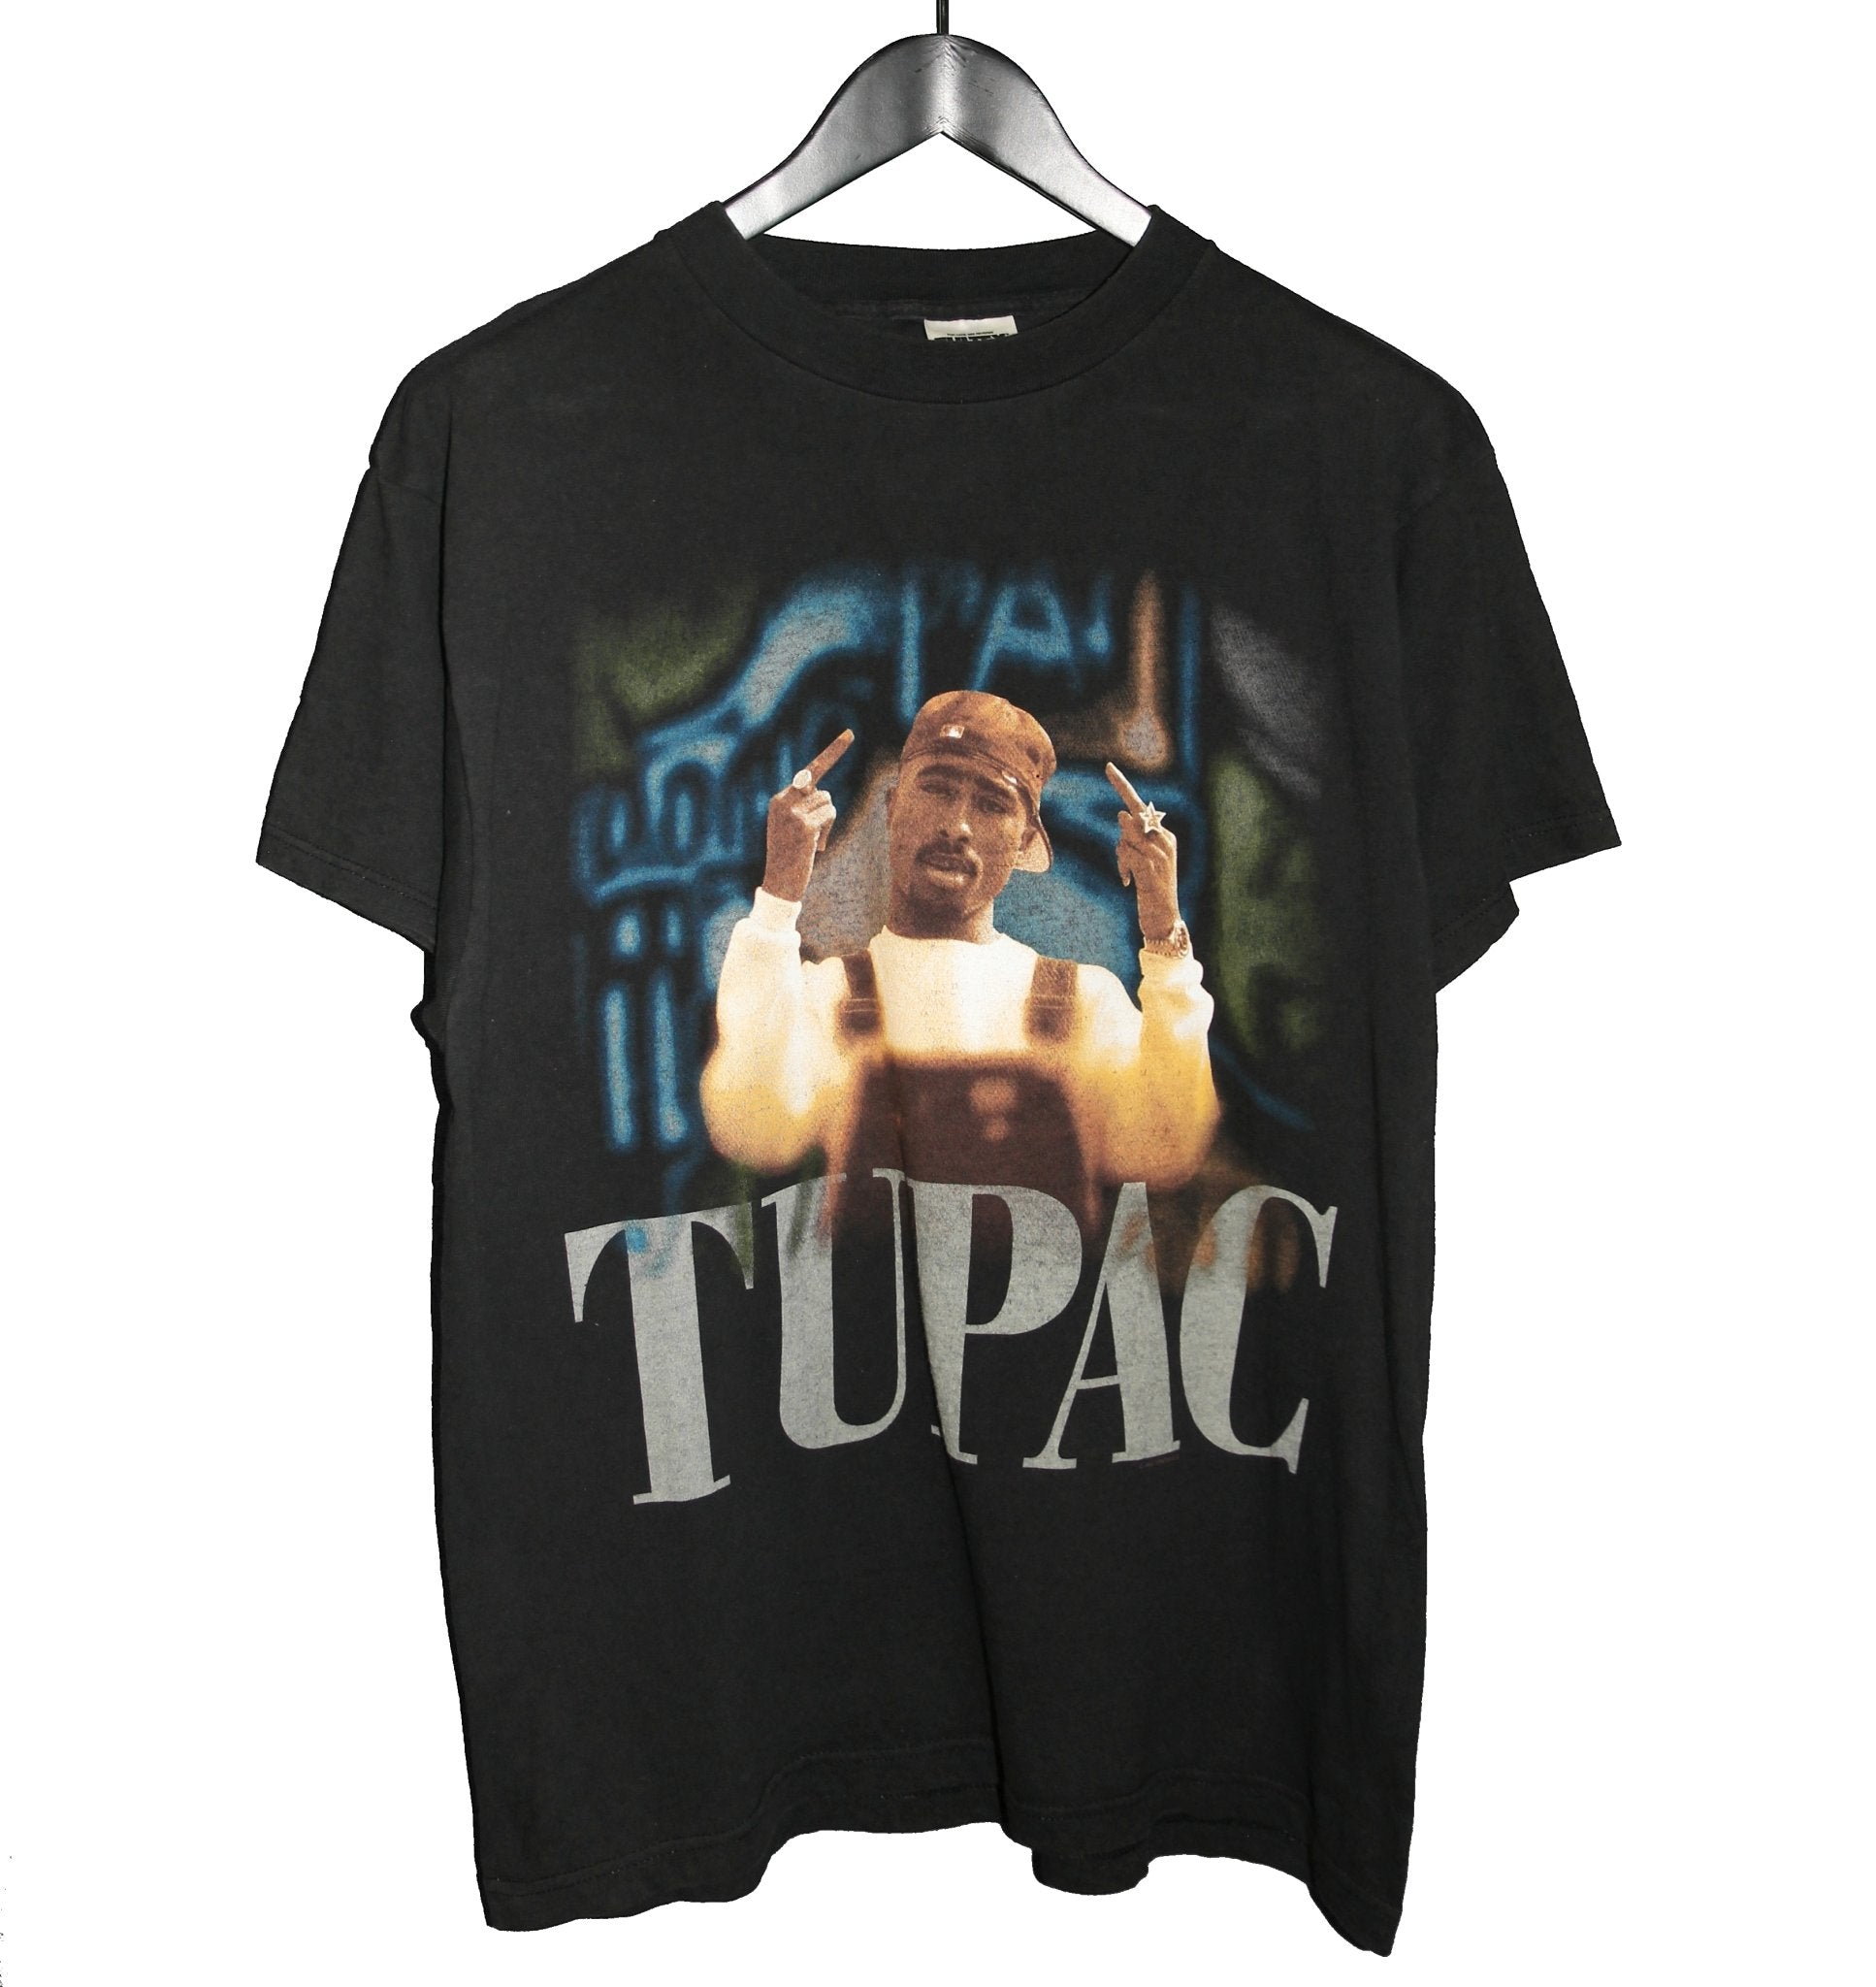 Tupac Shakur 1998 2PAC Memorial Shirt - Faded AU